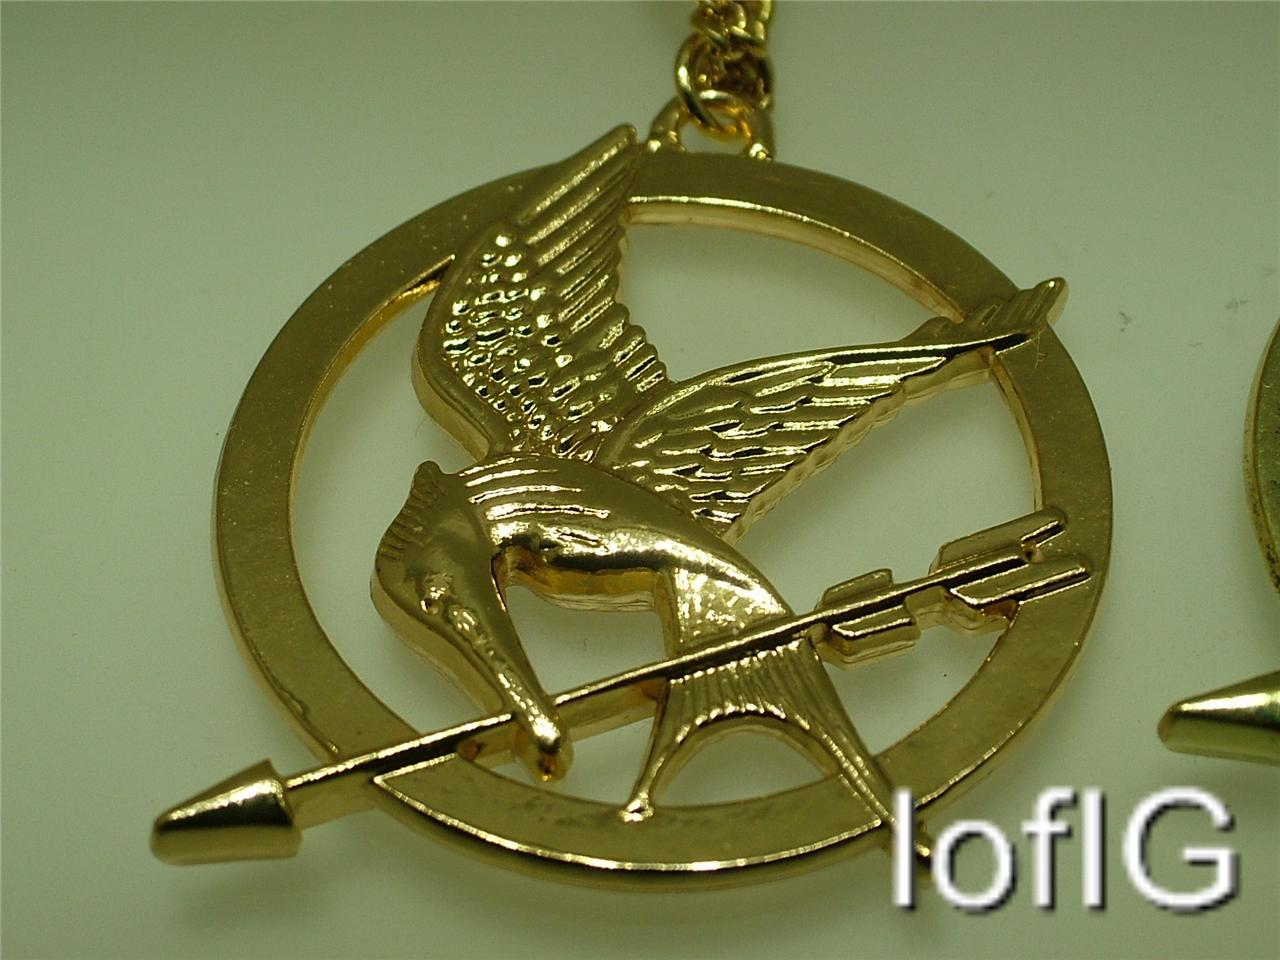 The hunger games mockingjay bird pendant long necklace gold the hunger games mockingjay bird pendant amp long mozeypictures Image collections